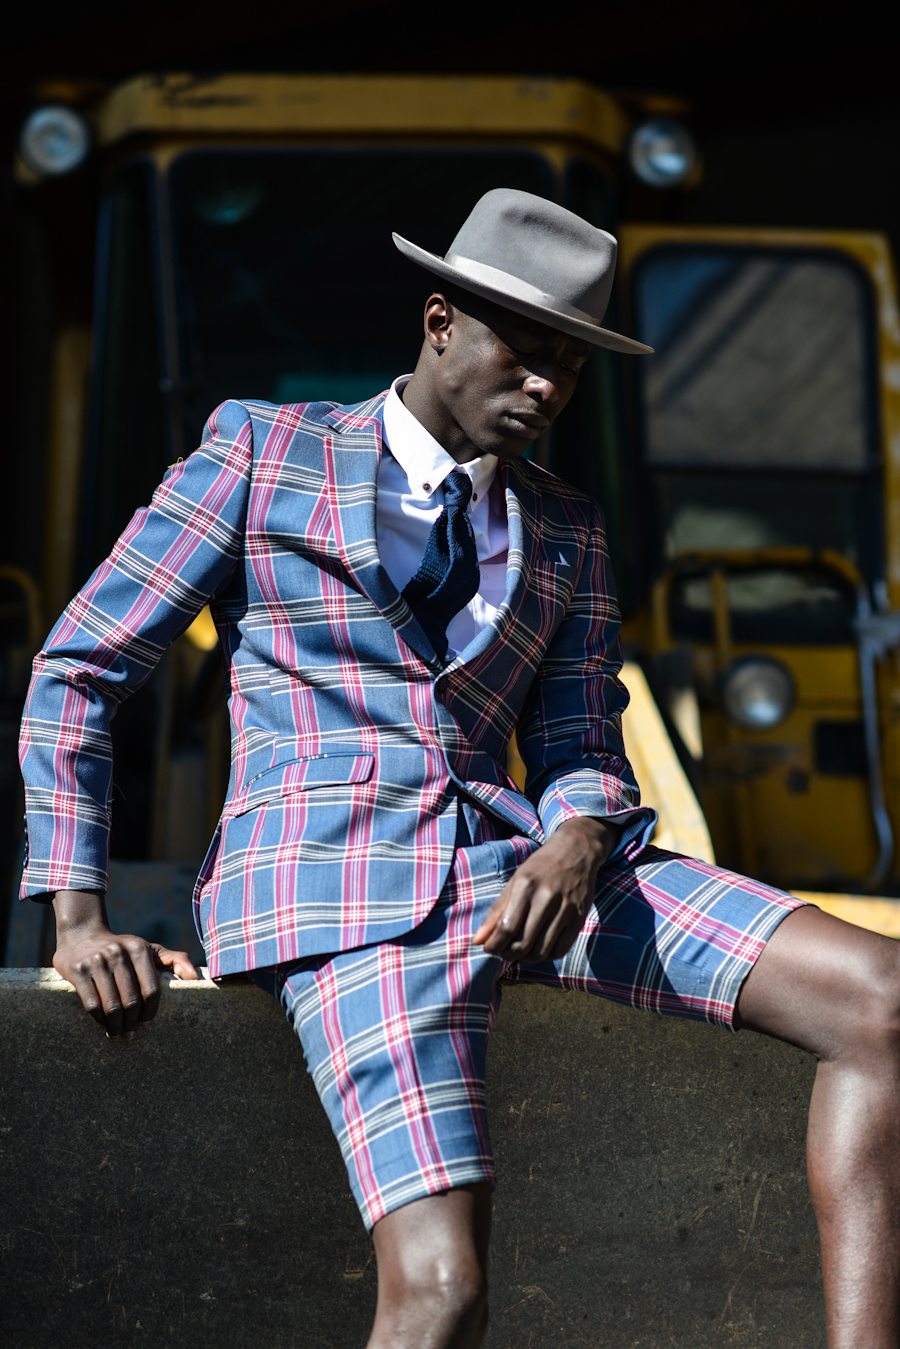 Moods-of-Norway-Dapper-Lou-Mass-Fall-East-Flatbush-Brooklyn-Plaid-Suit-4.jpg